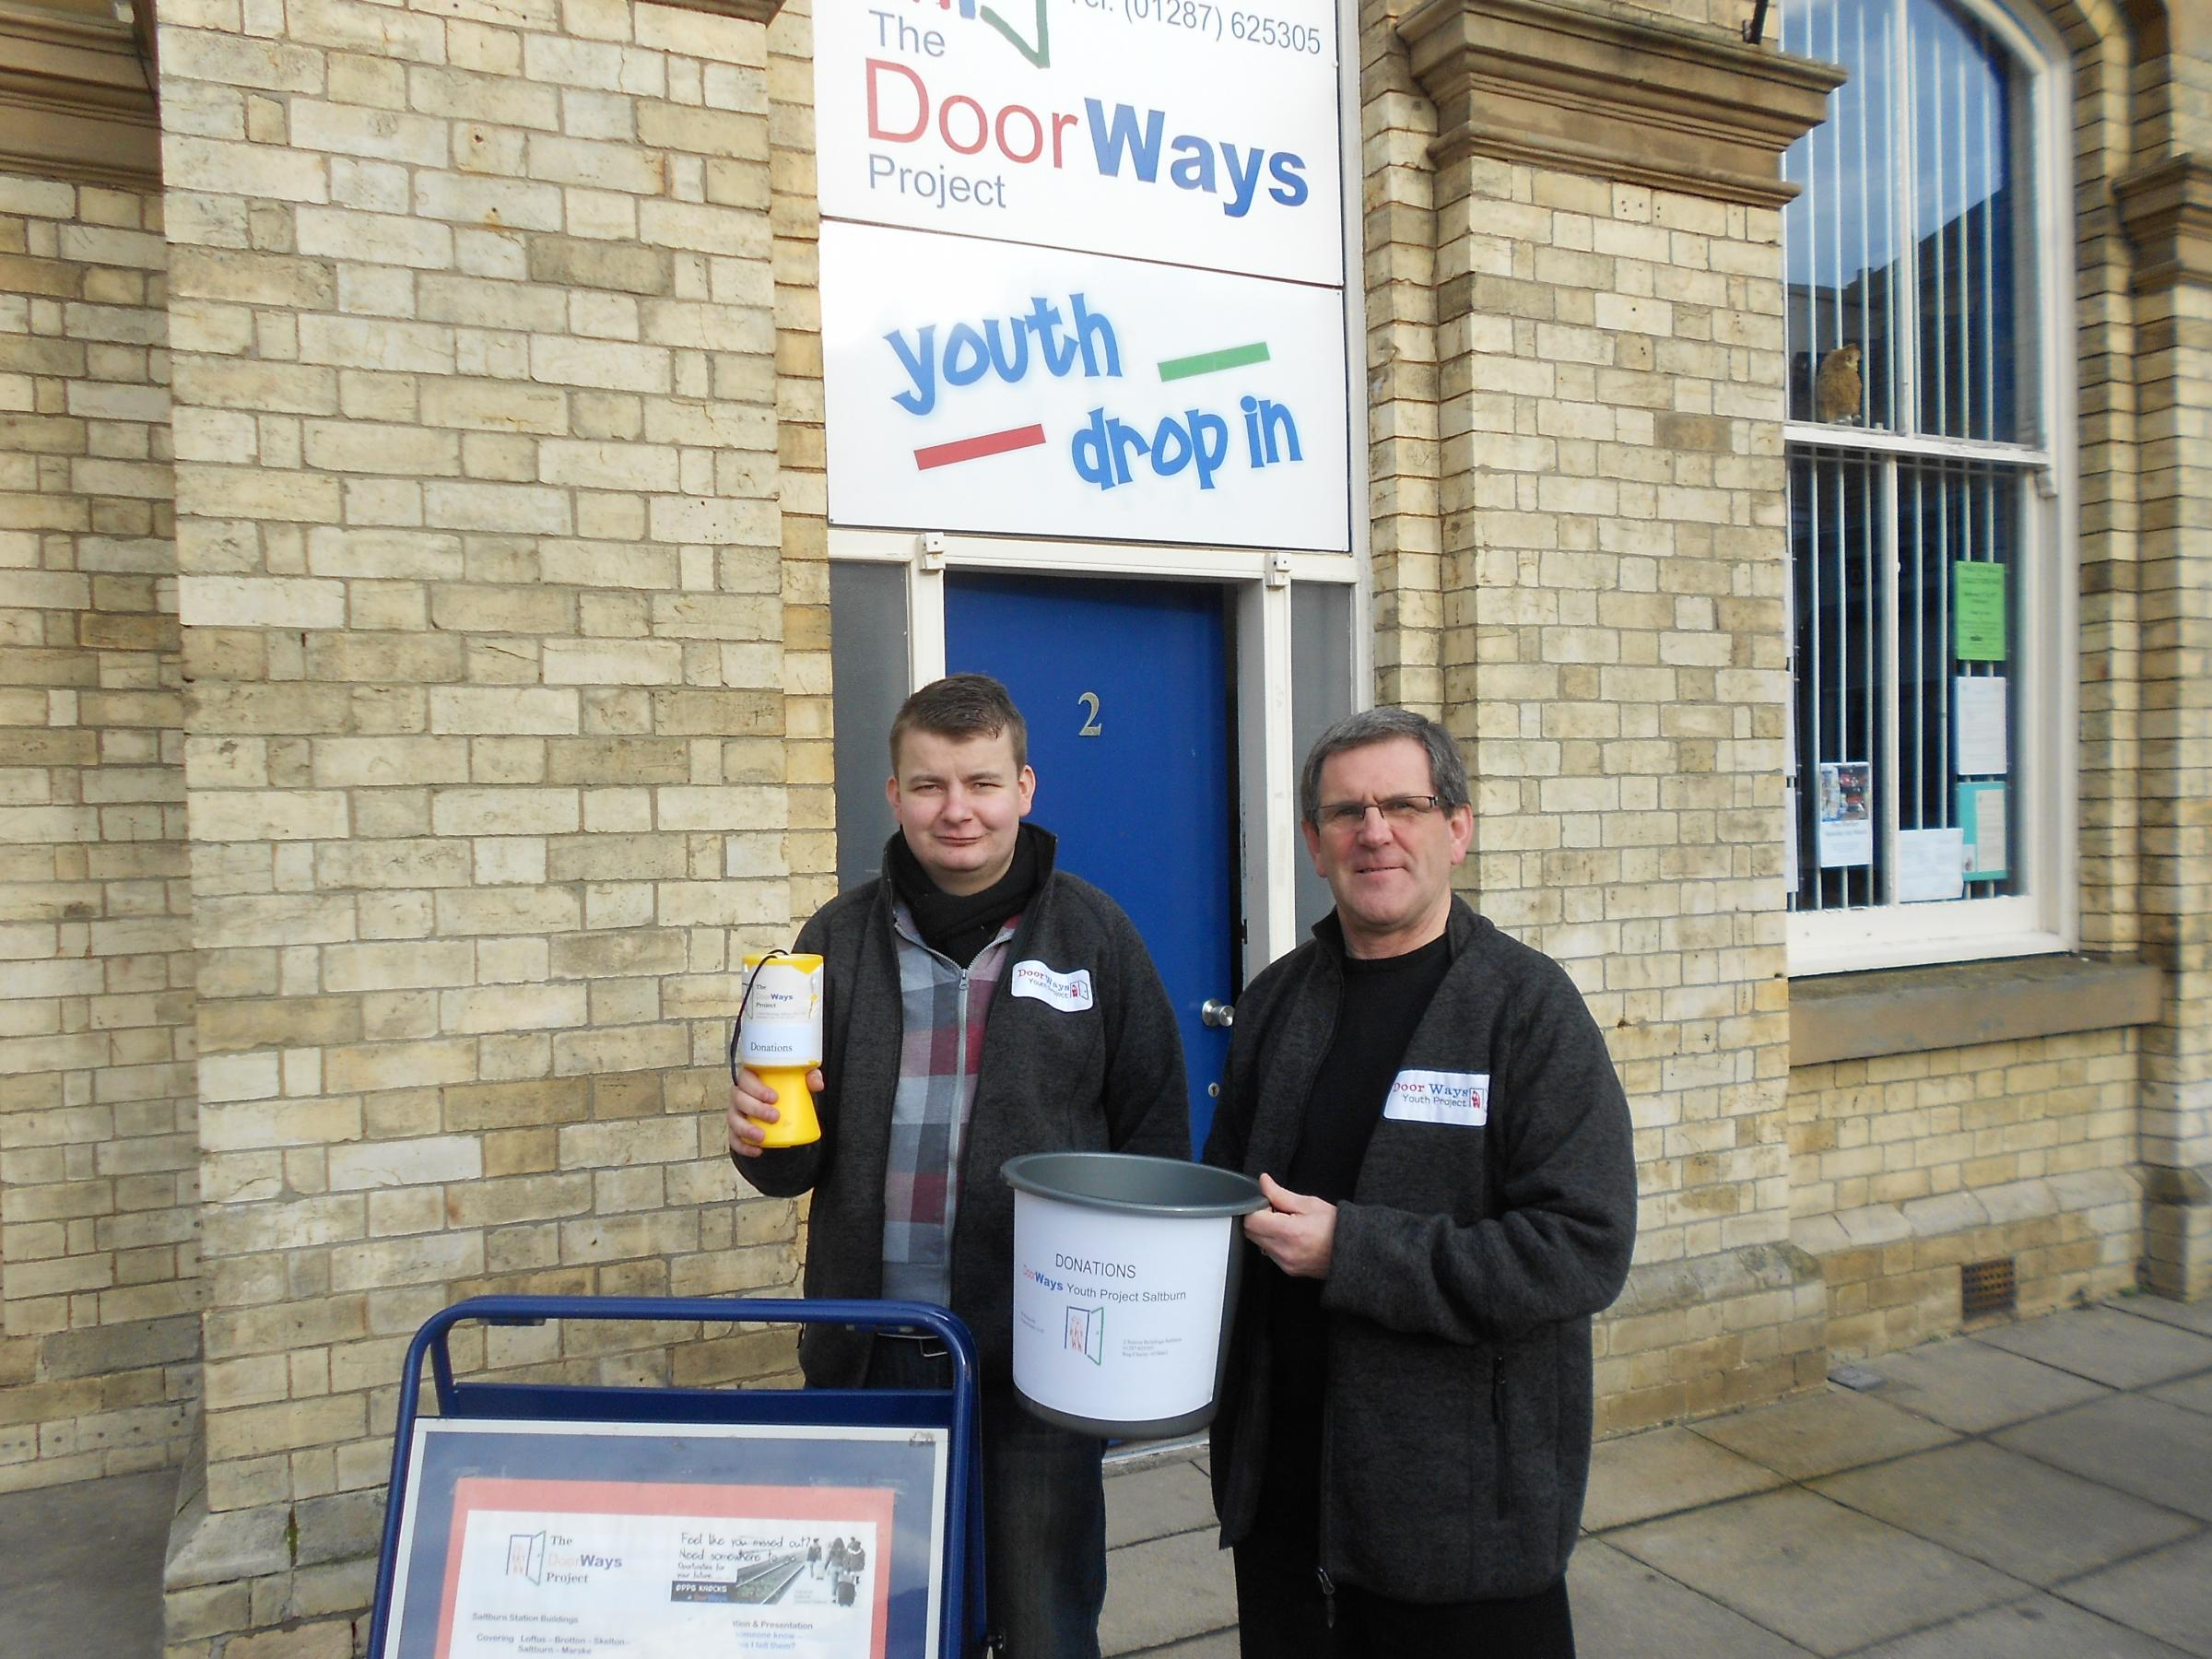 John Thompson and John Pearson collect money for the DoorWays project